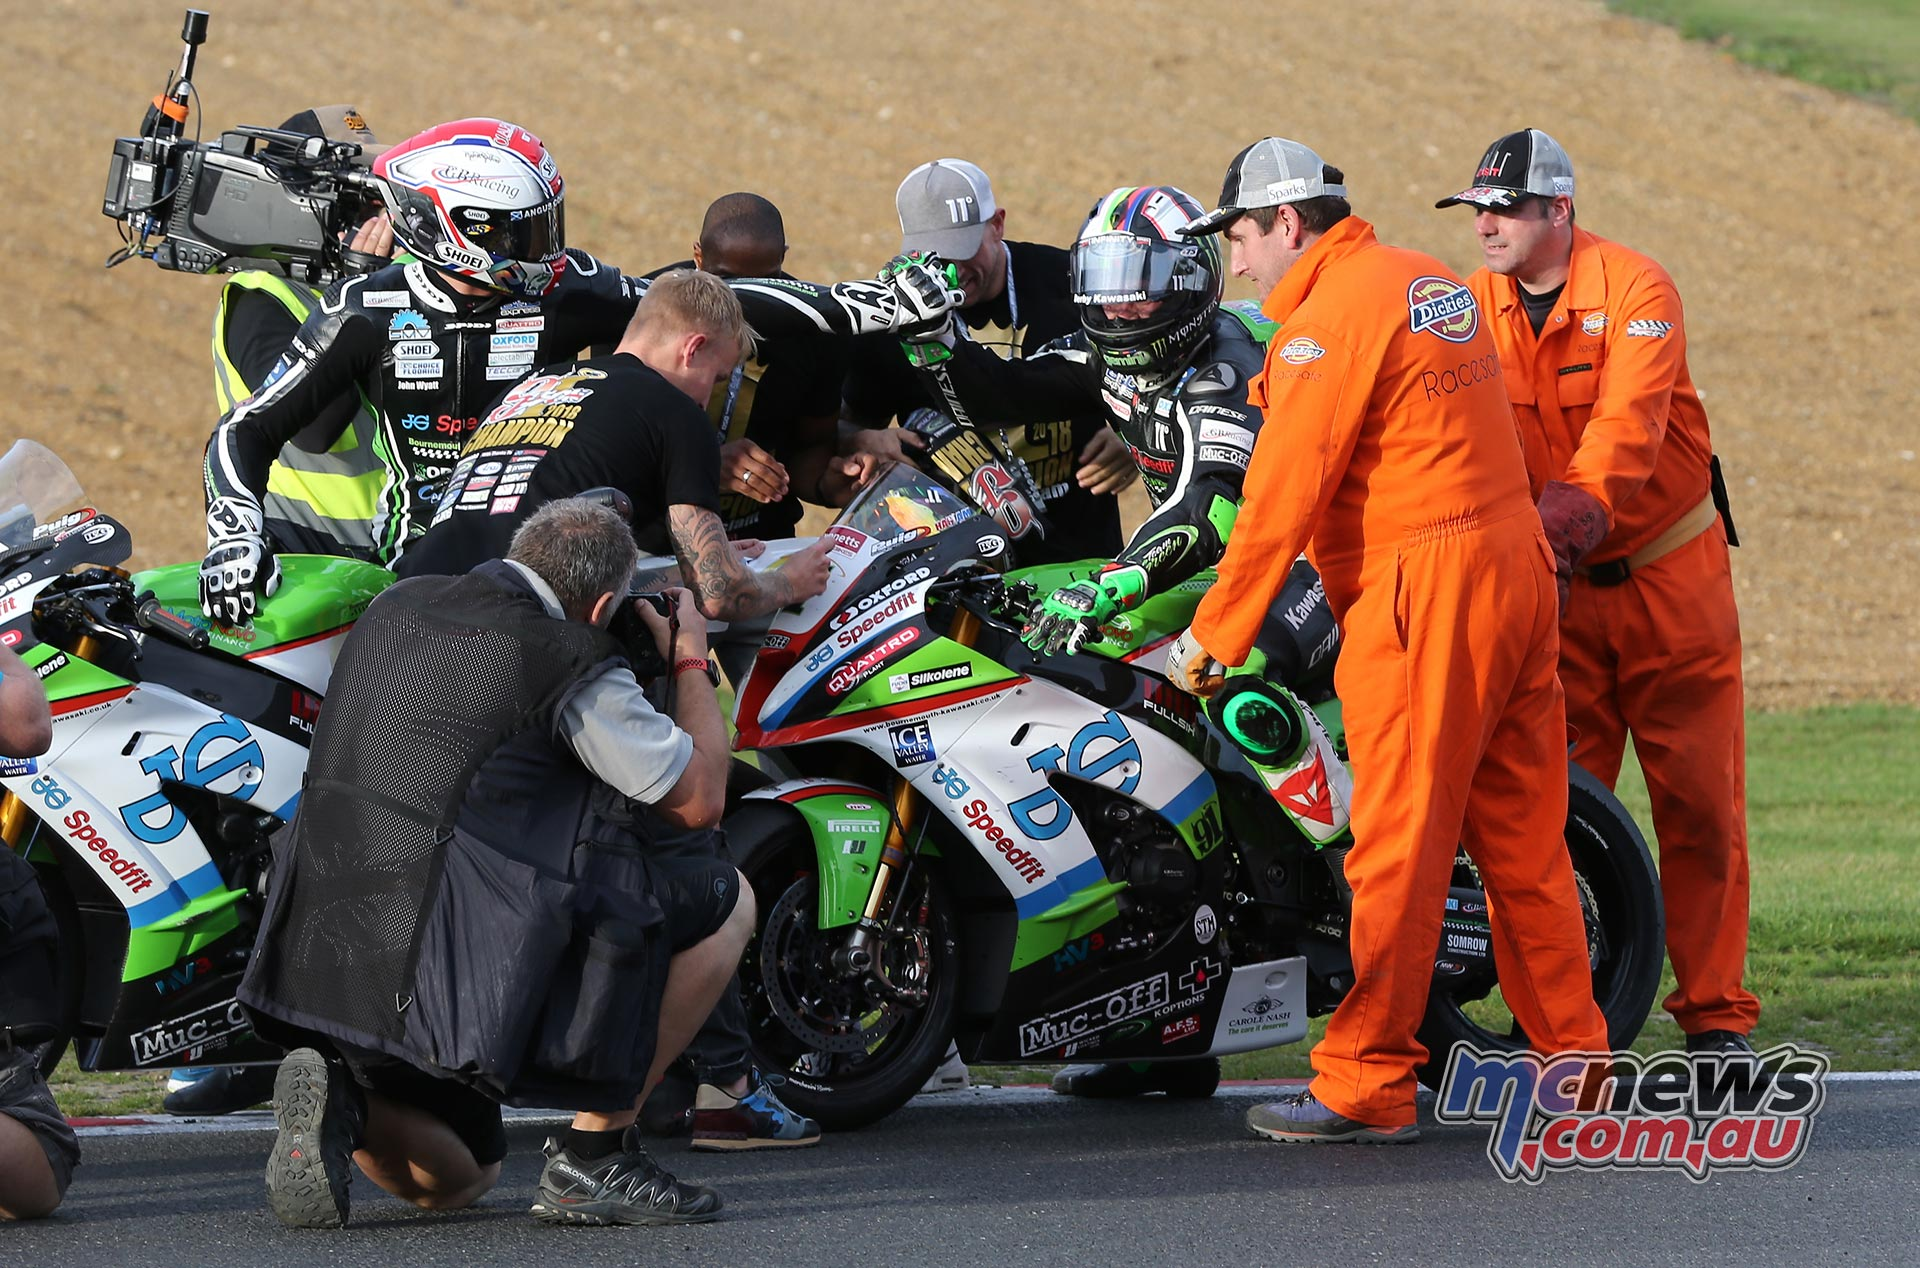 BSB Final Brands Leon Haslam